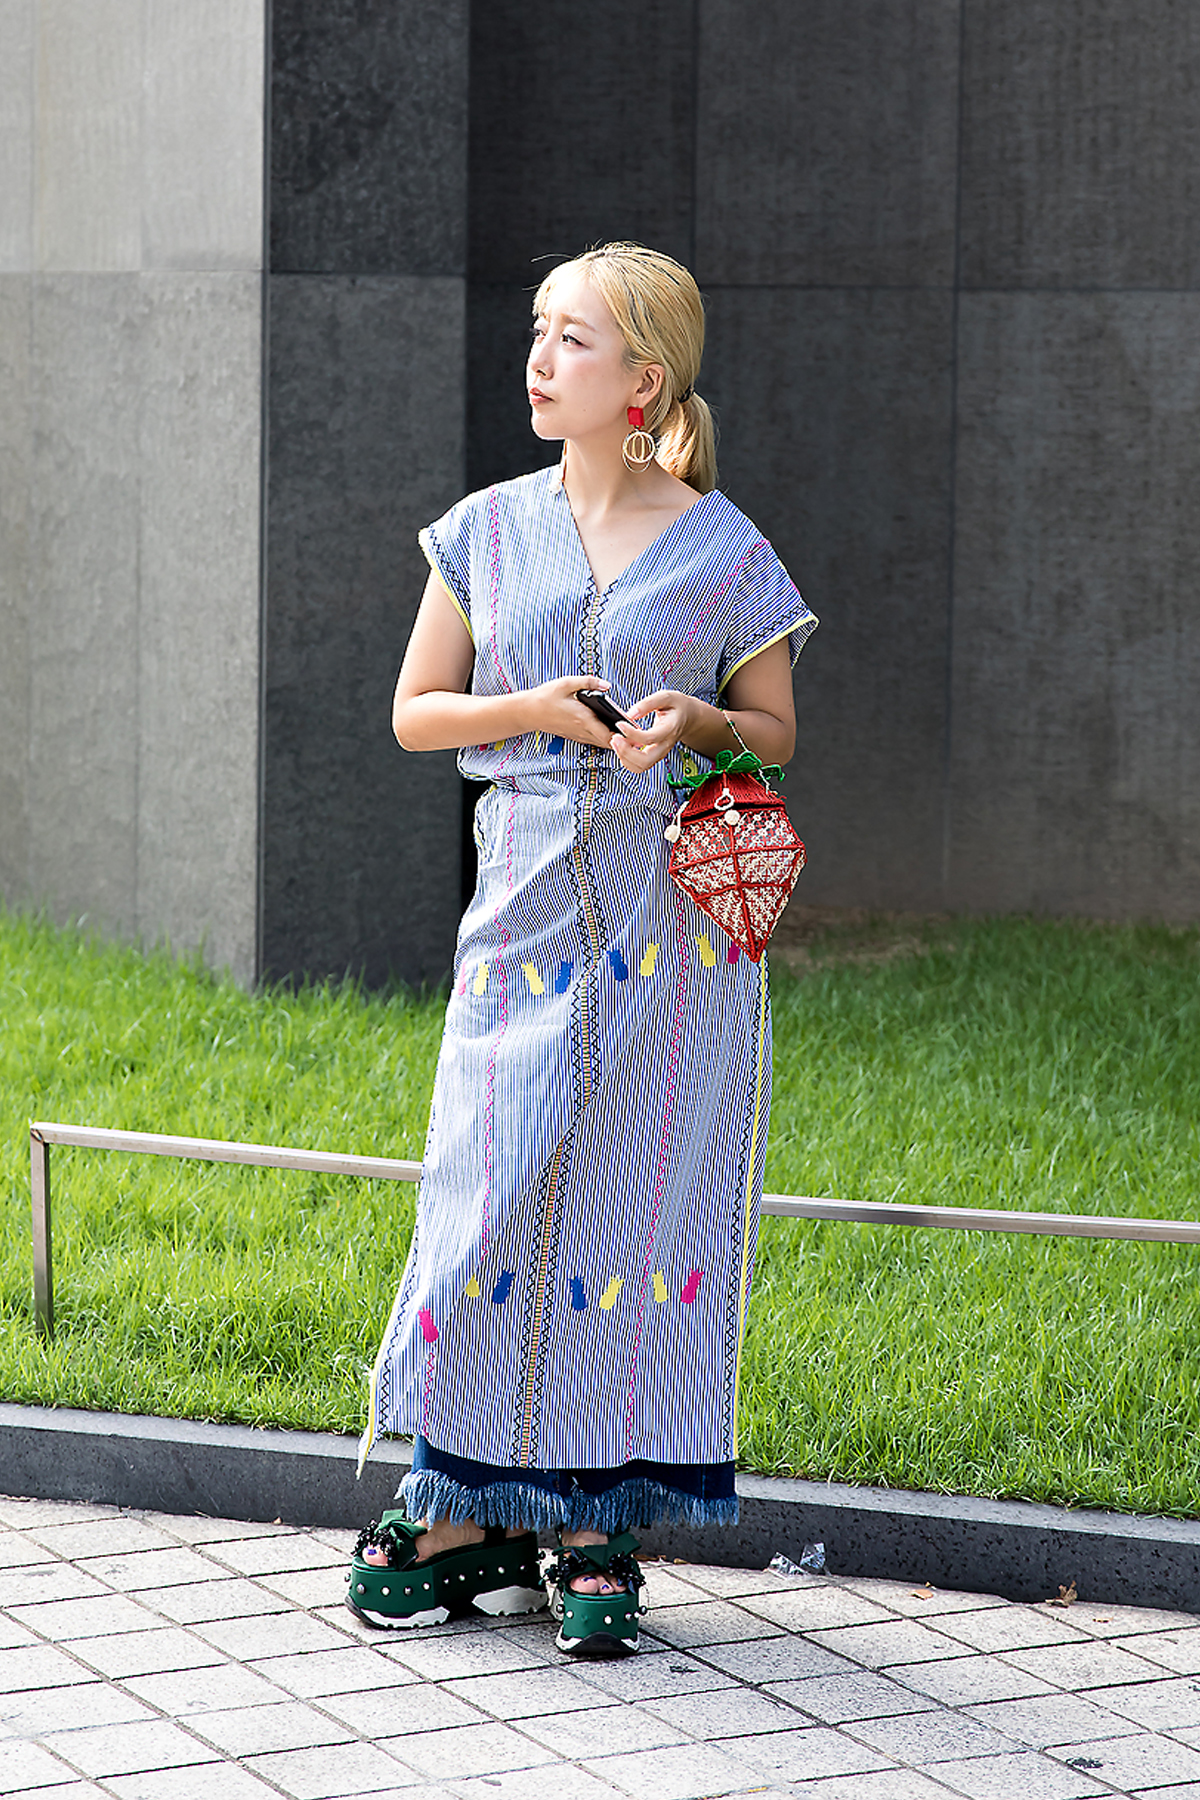 Lee Nanjung, Street Fashion 2017 in Seoul.jpg